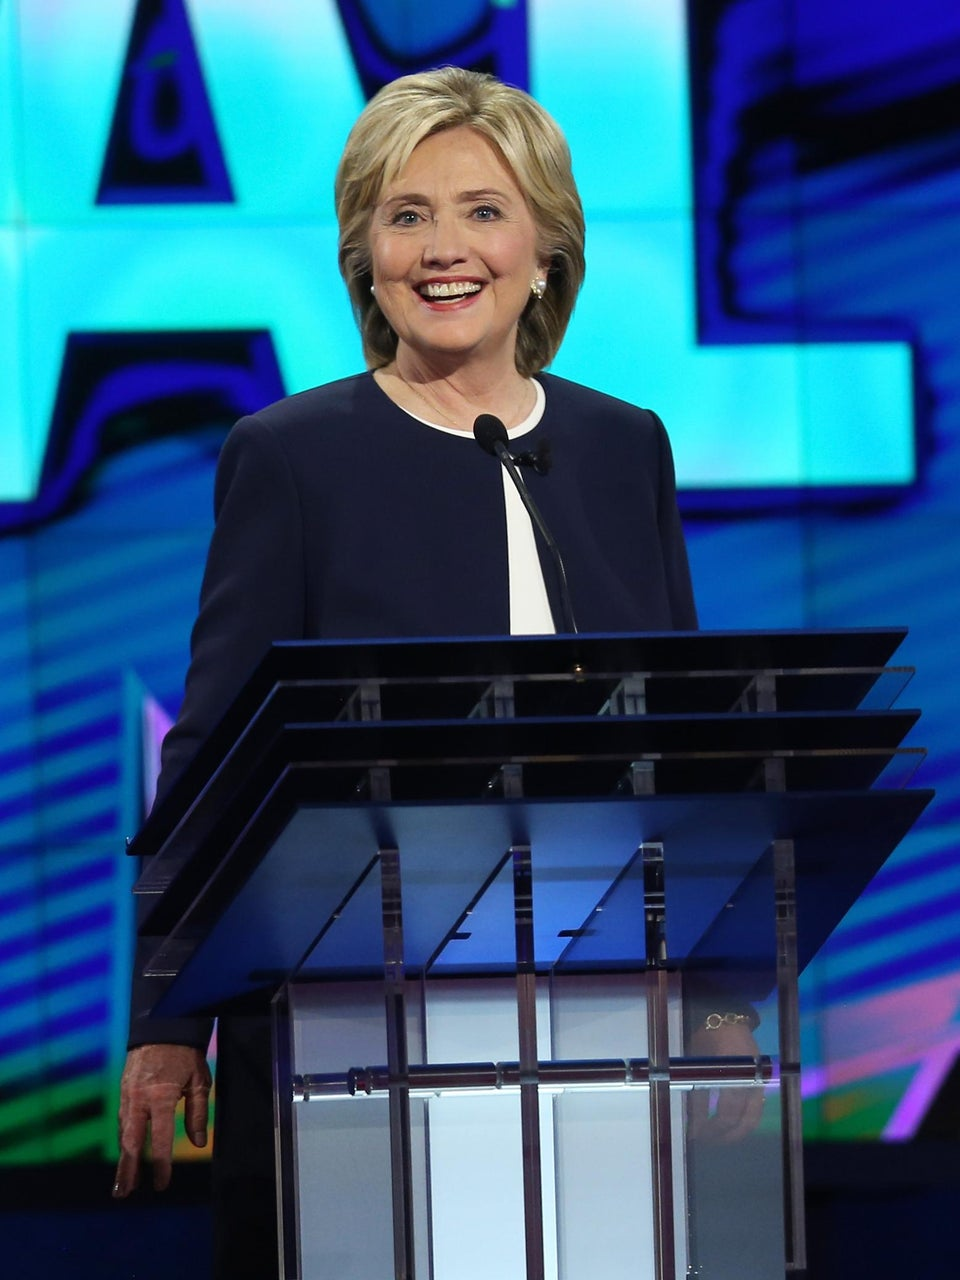 Hillary Clinton Details Plans For Black Youth And HBCUs